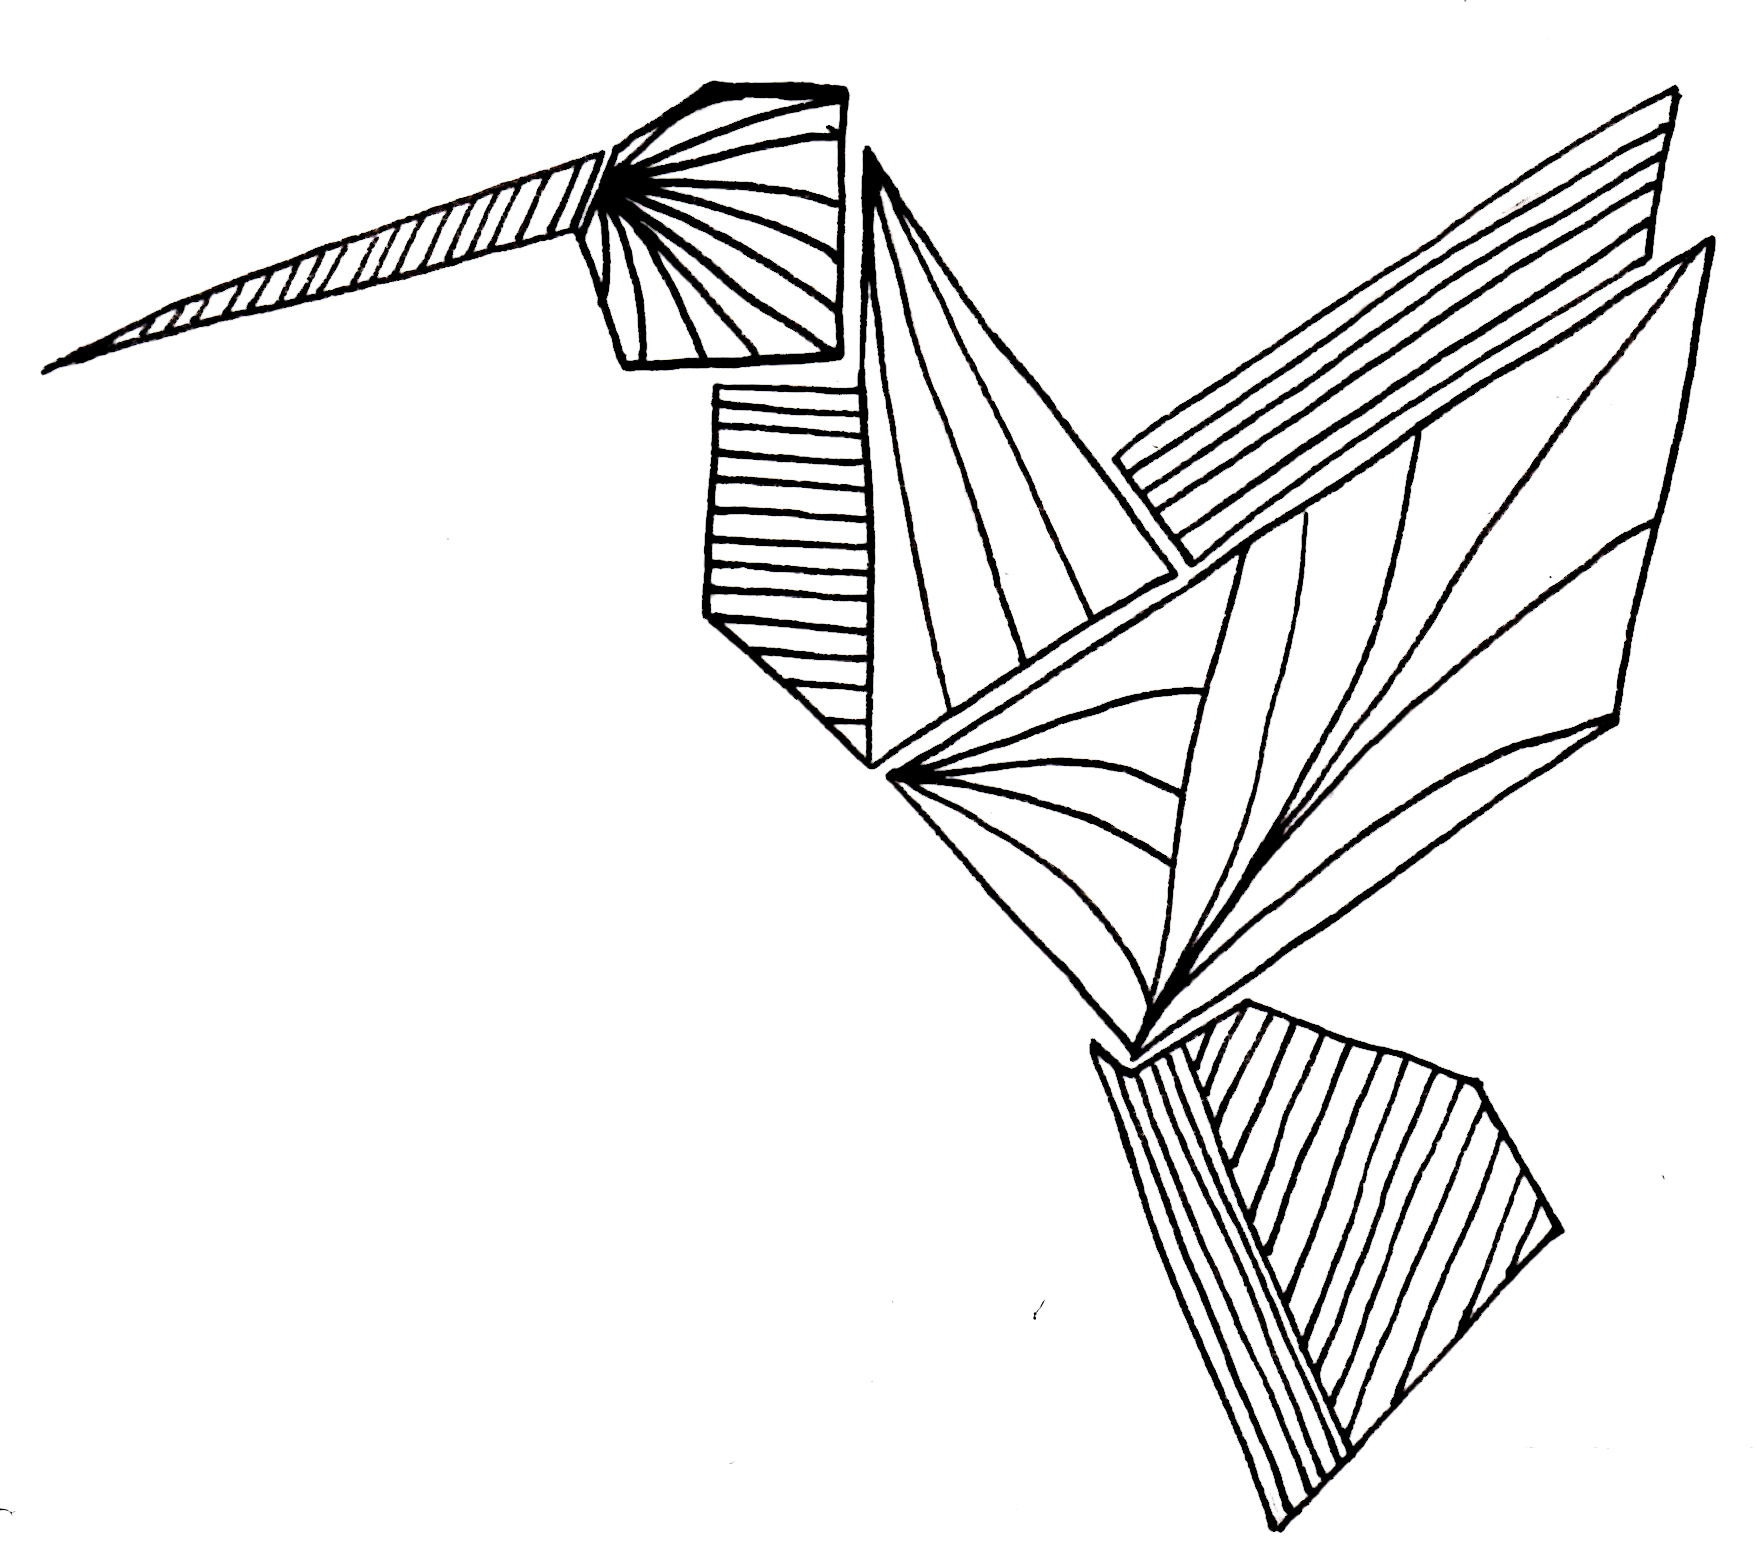 origami bird - origami bird easy - origami bird instructions ... | 1559x1757